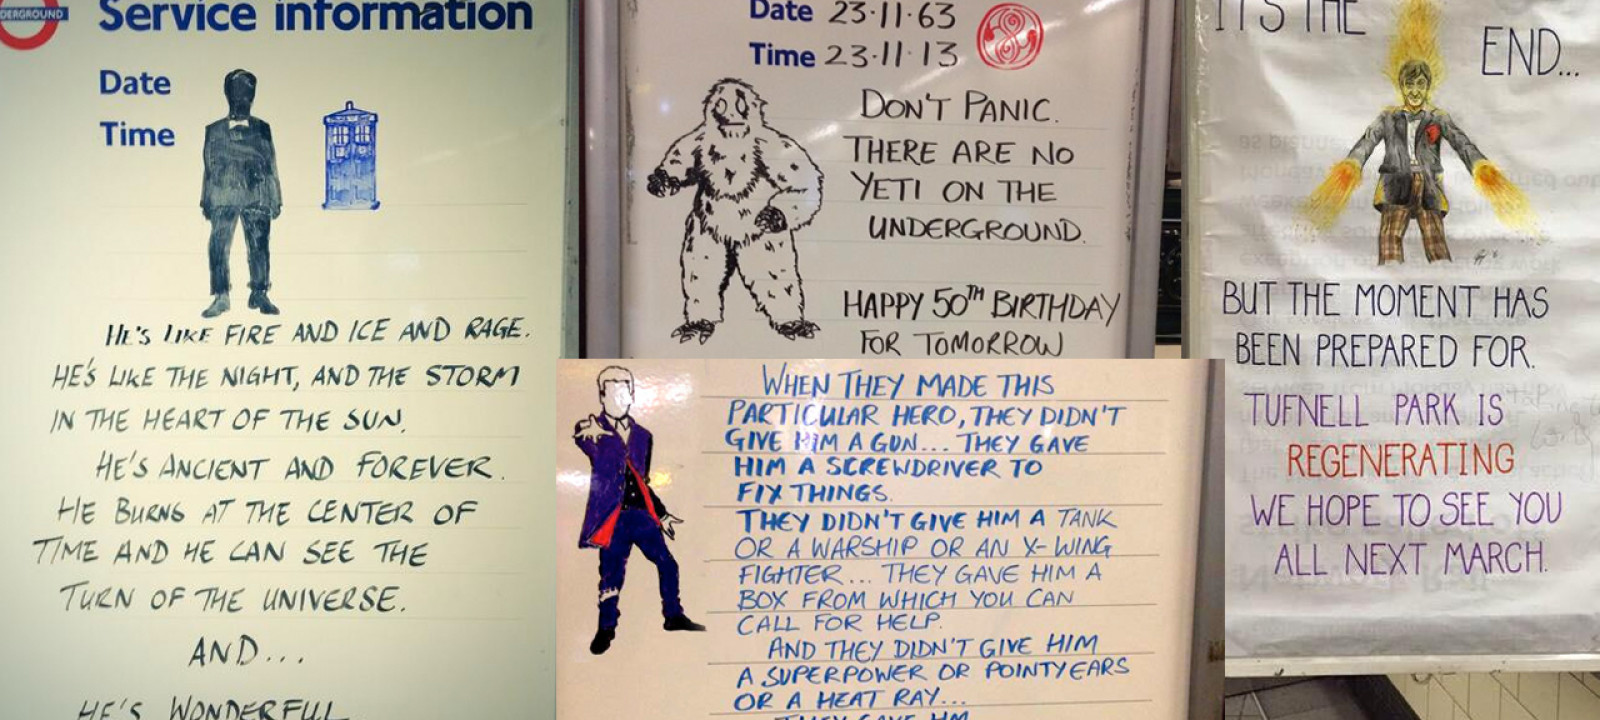 The 'Doctor Who' signs of Tufnell Park station (Pics: Twitter)